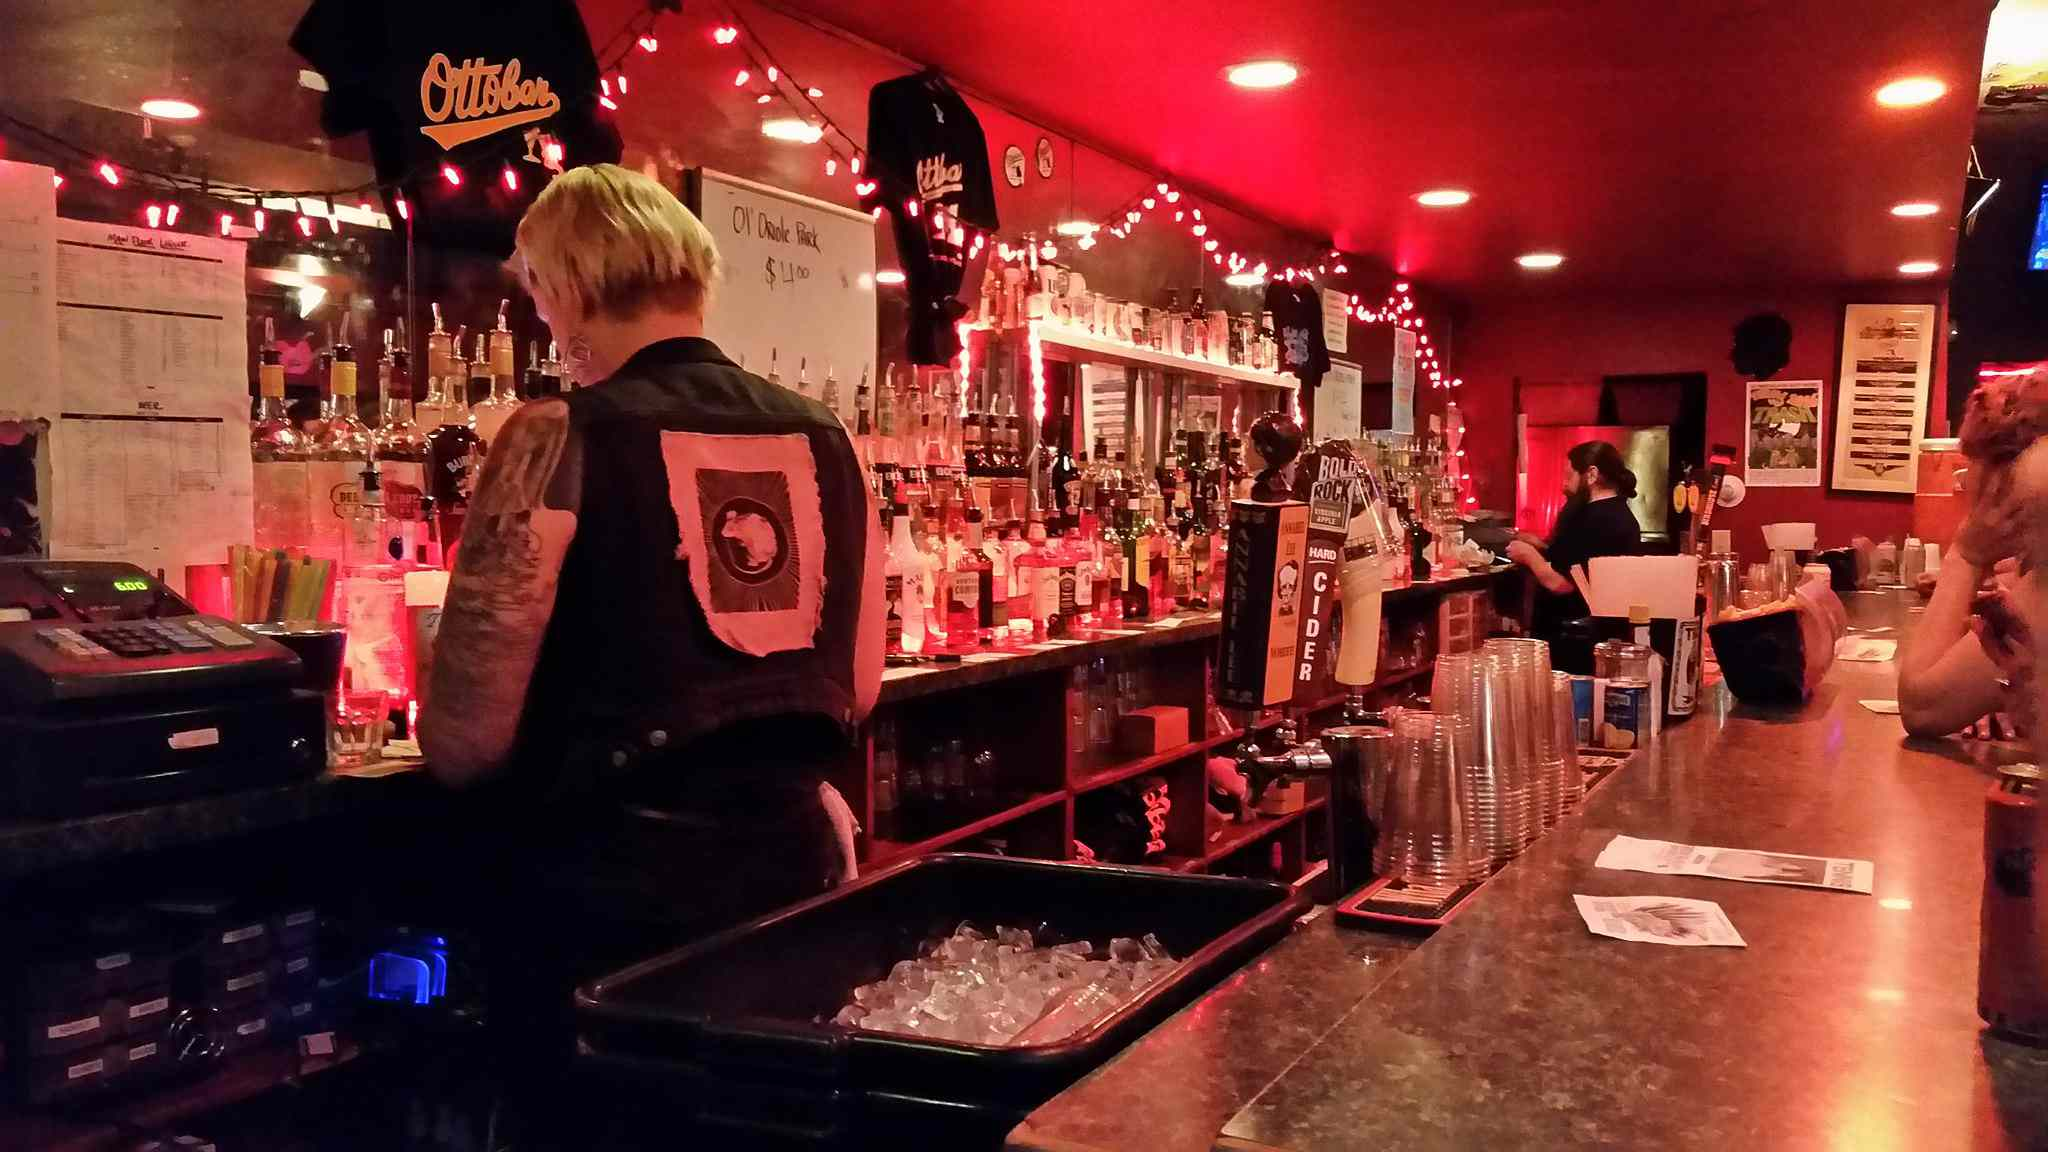 a red-lit bar at night with bartenders